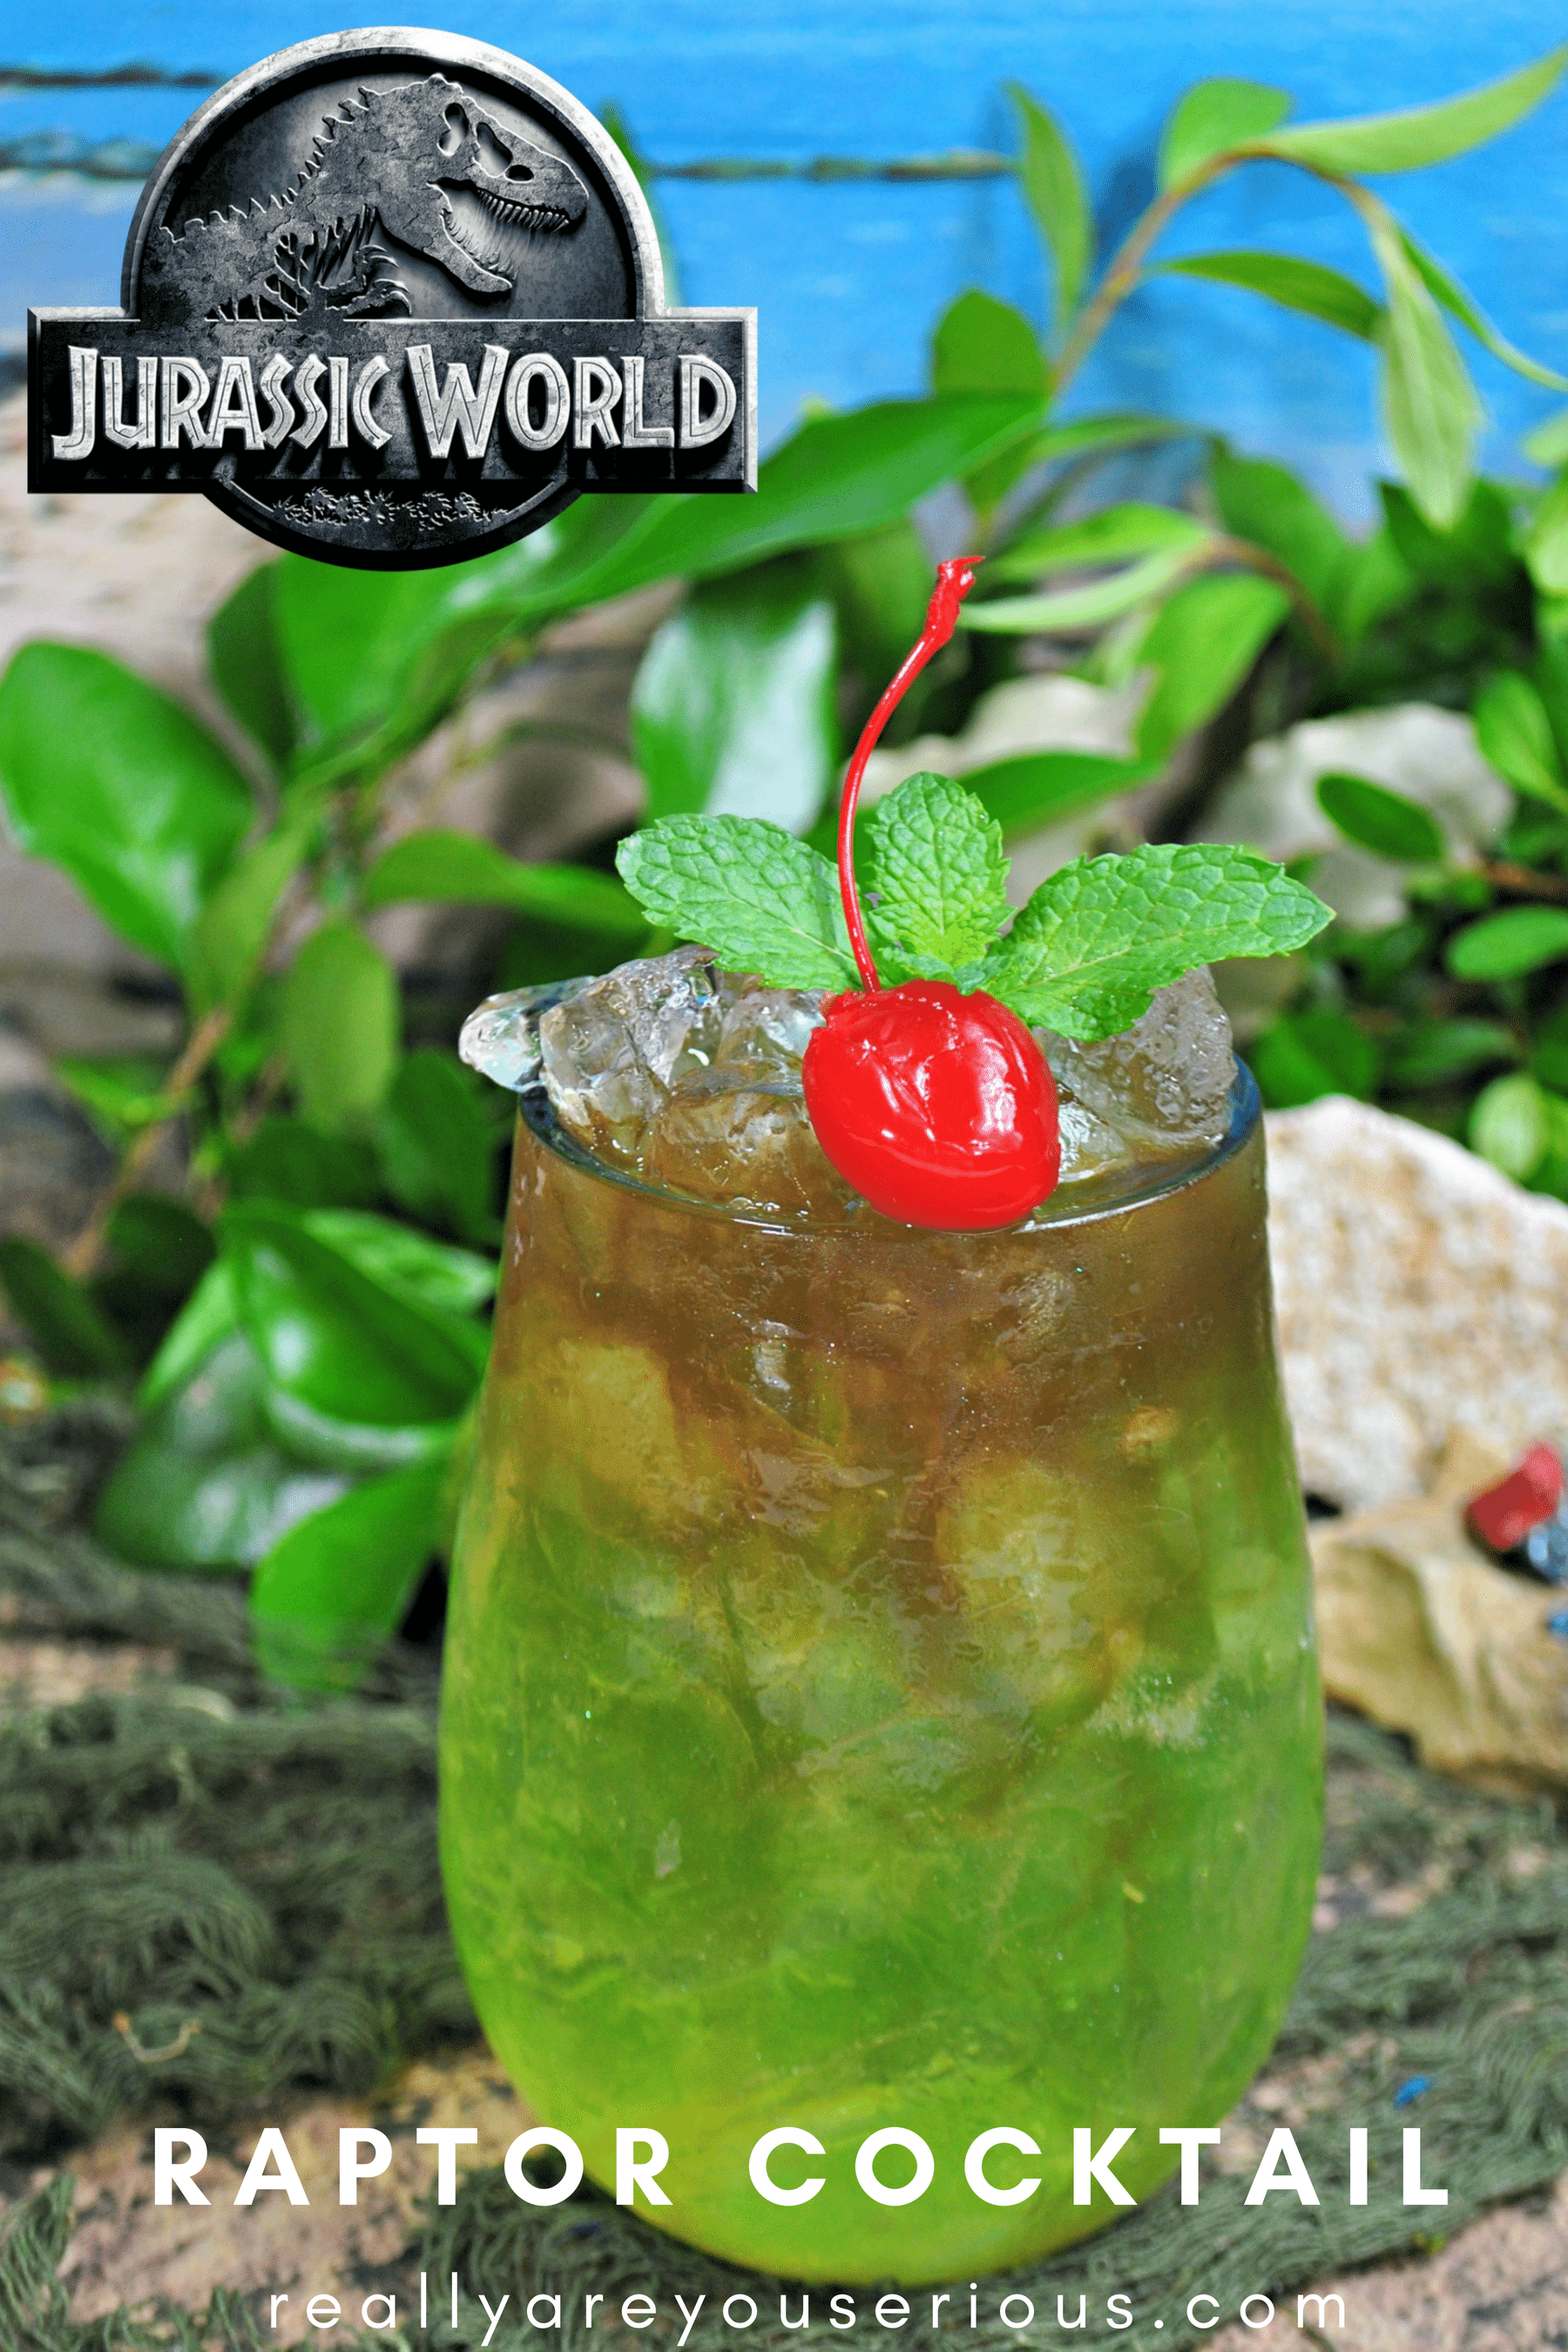 Raptor Cocktail inspired by Jurassic World